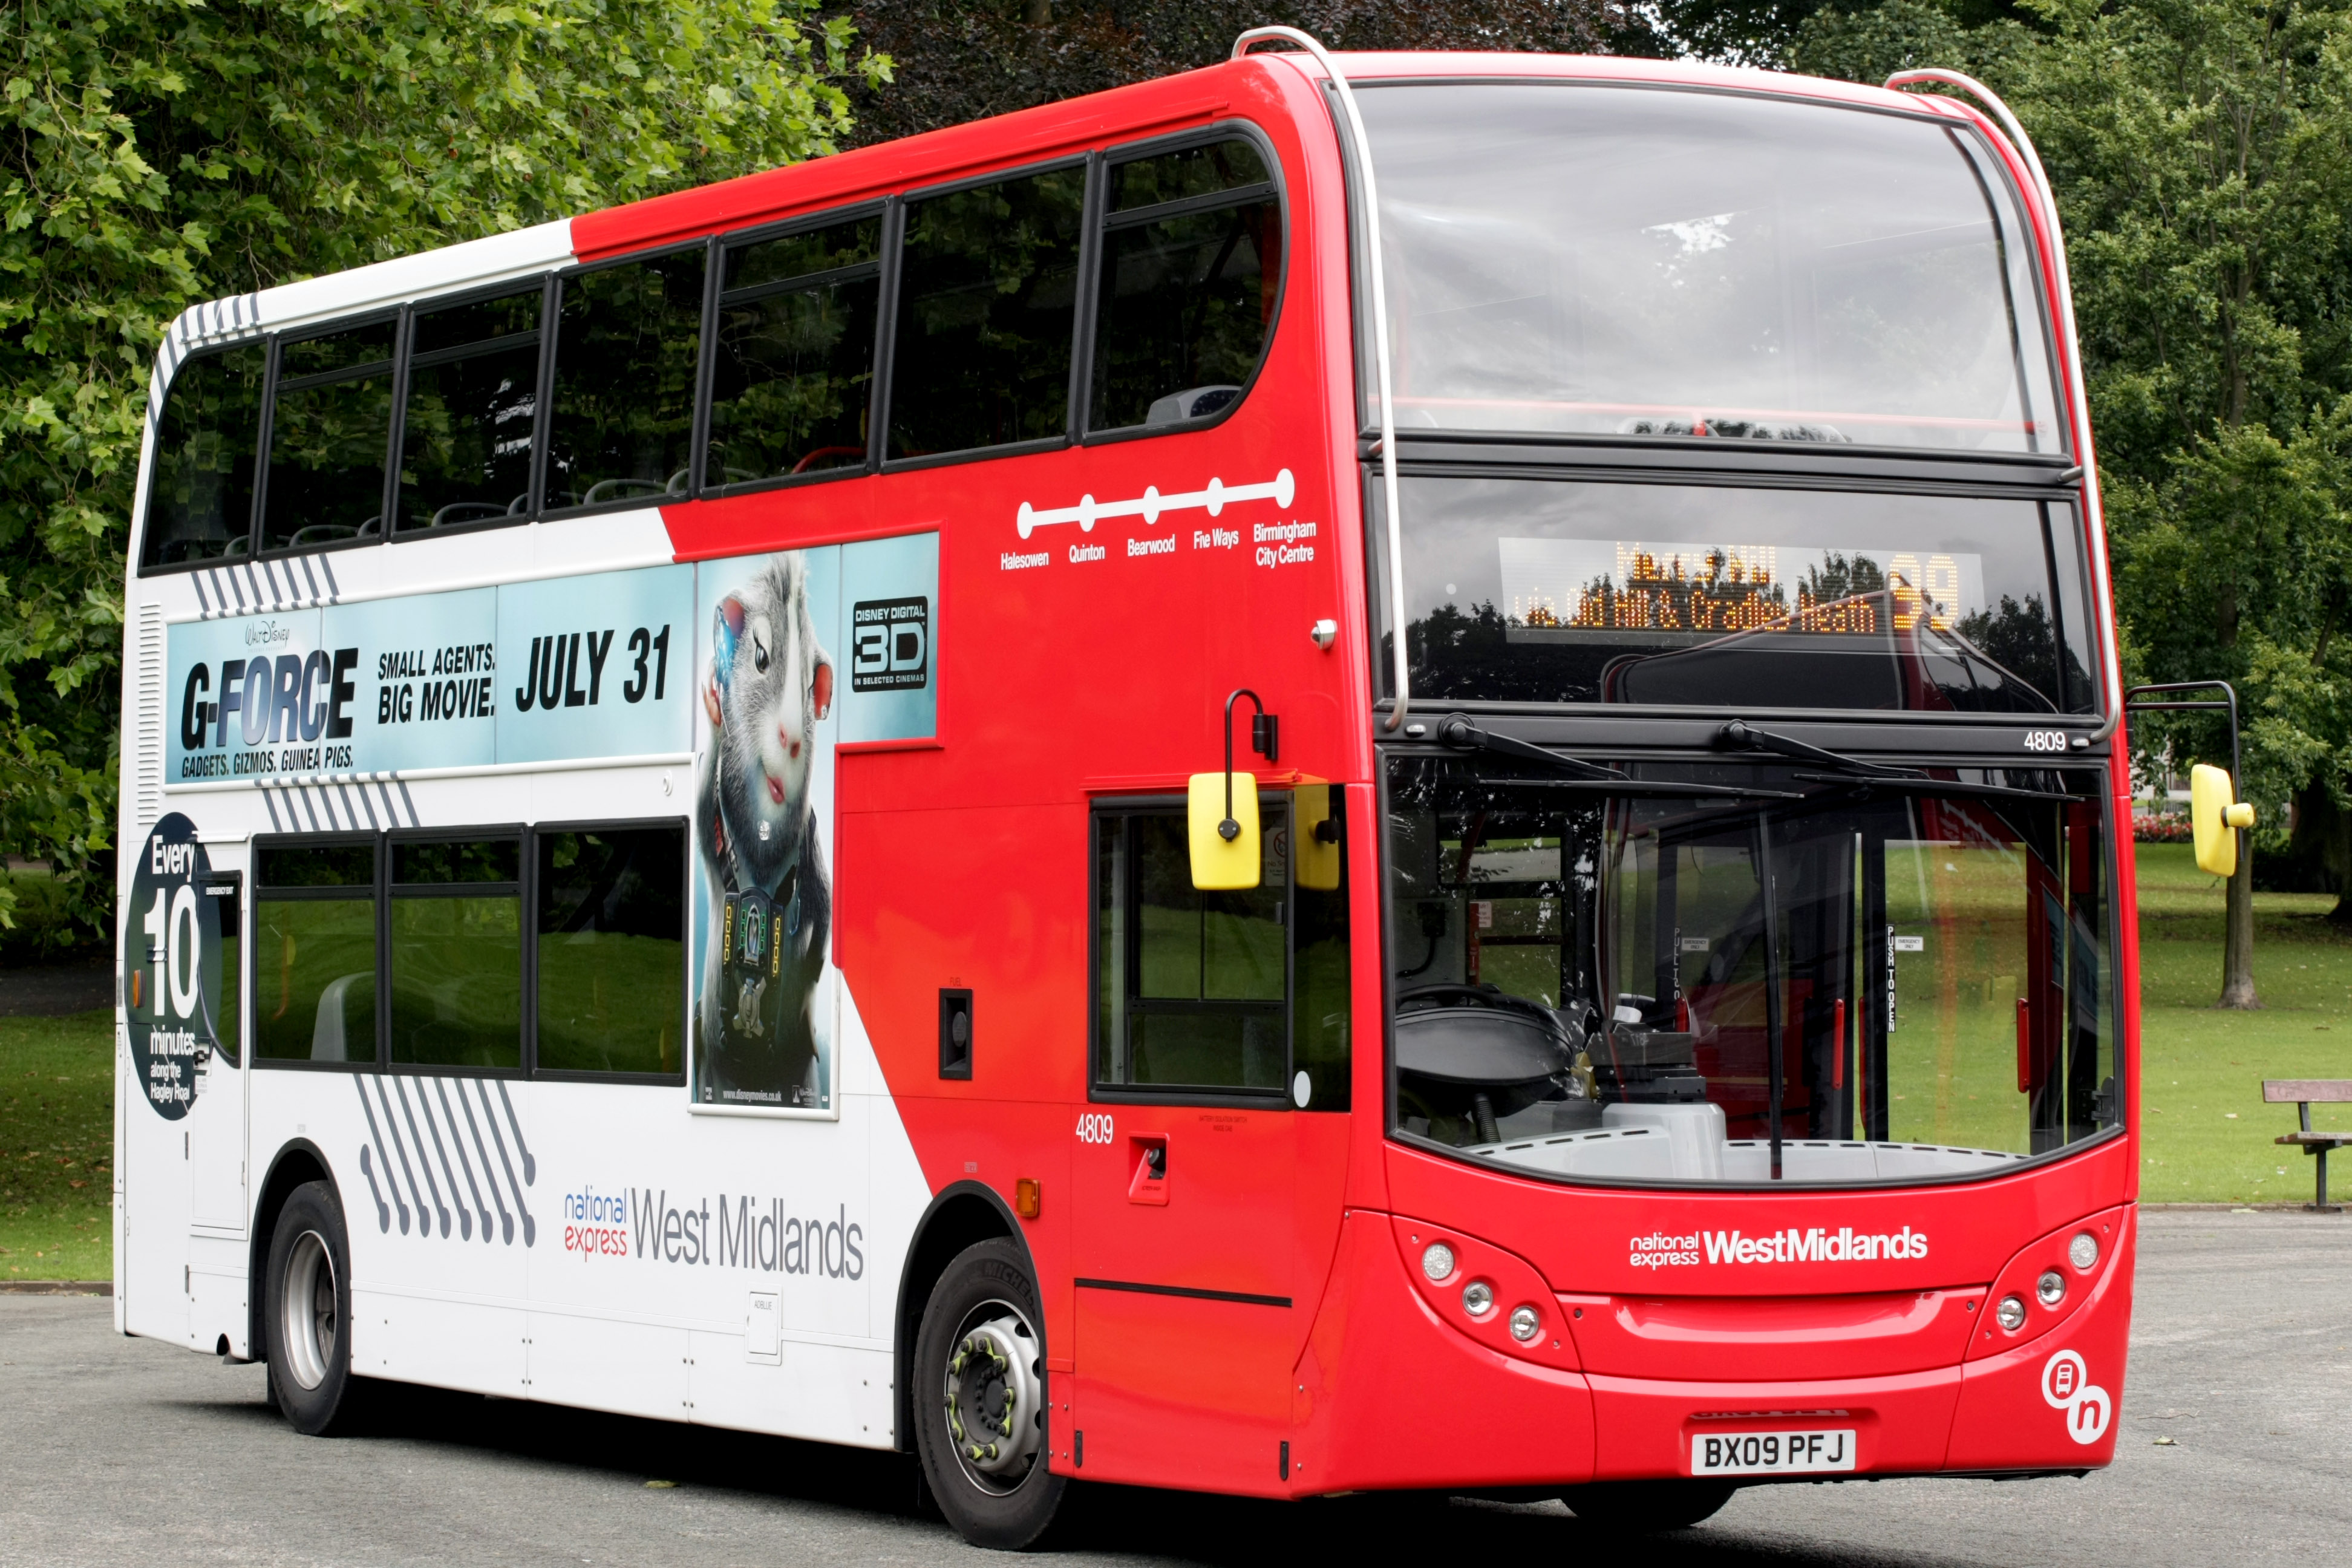 Image of a double decker bus